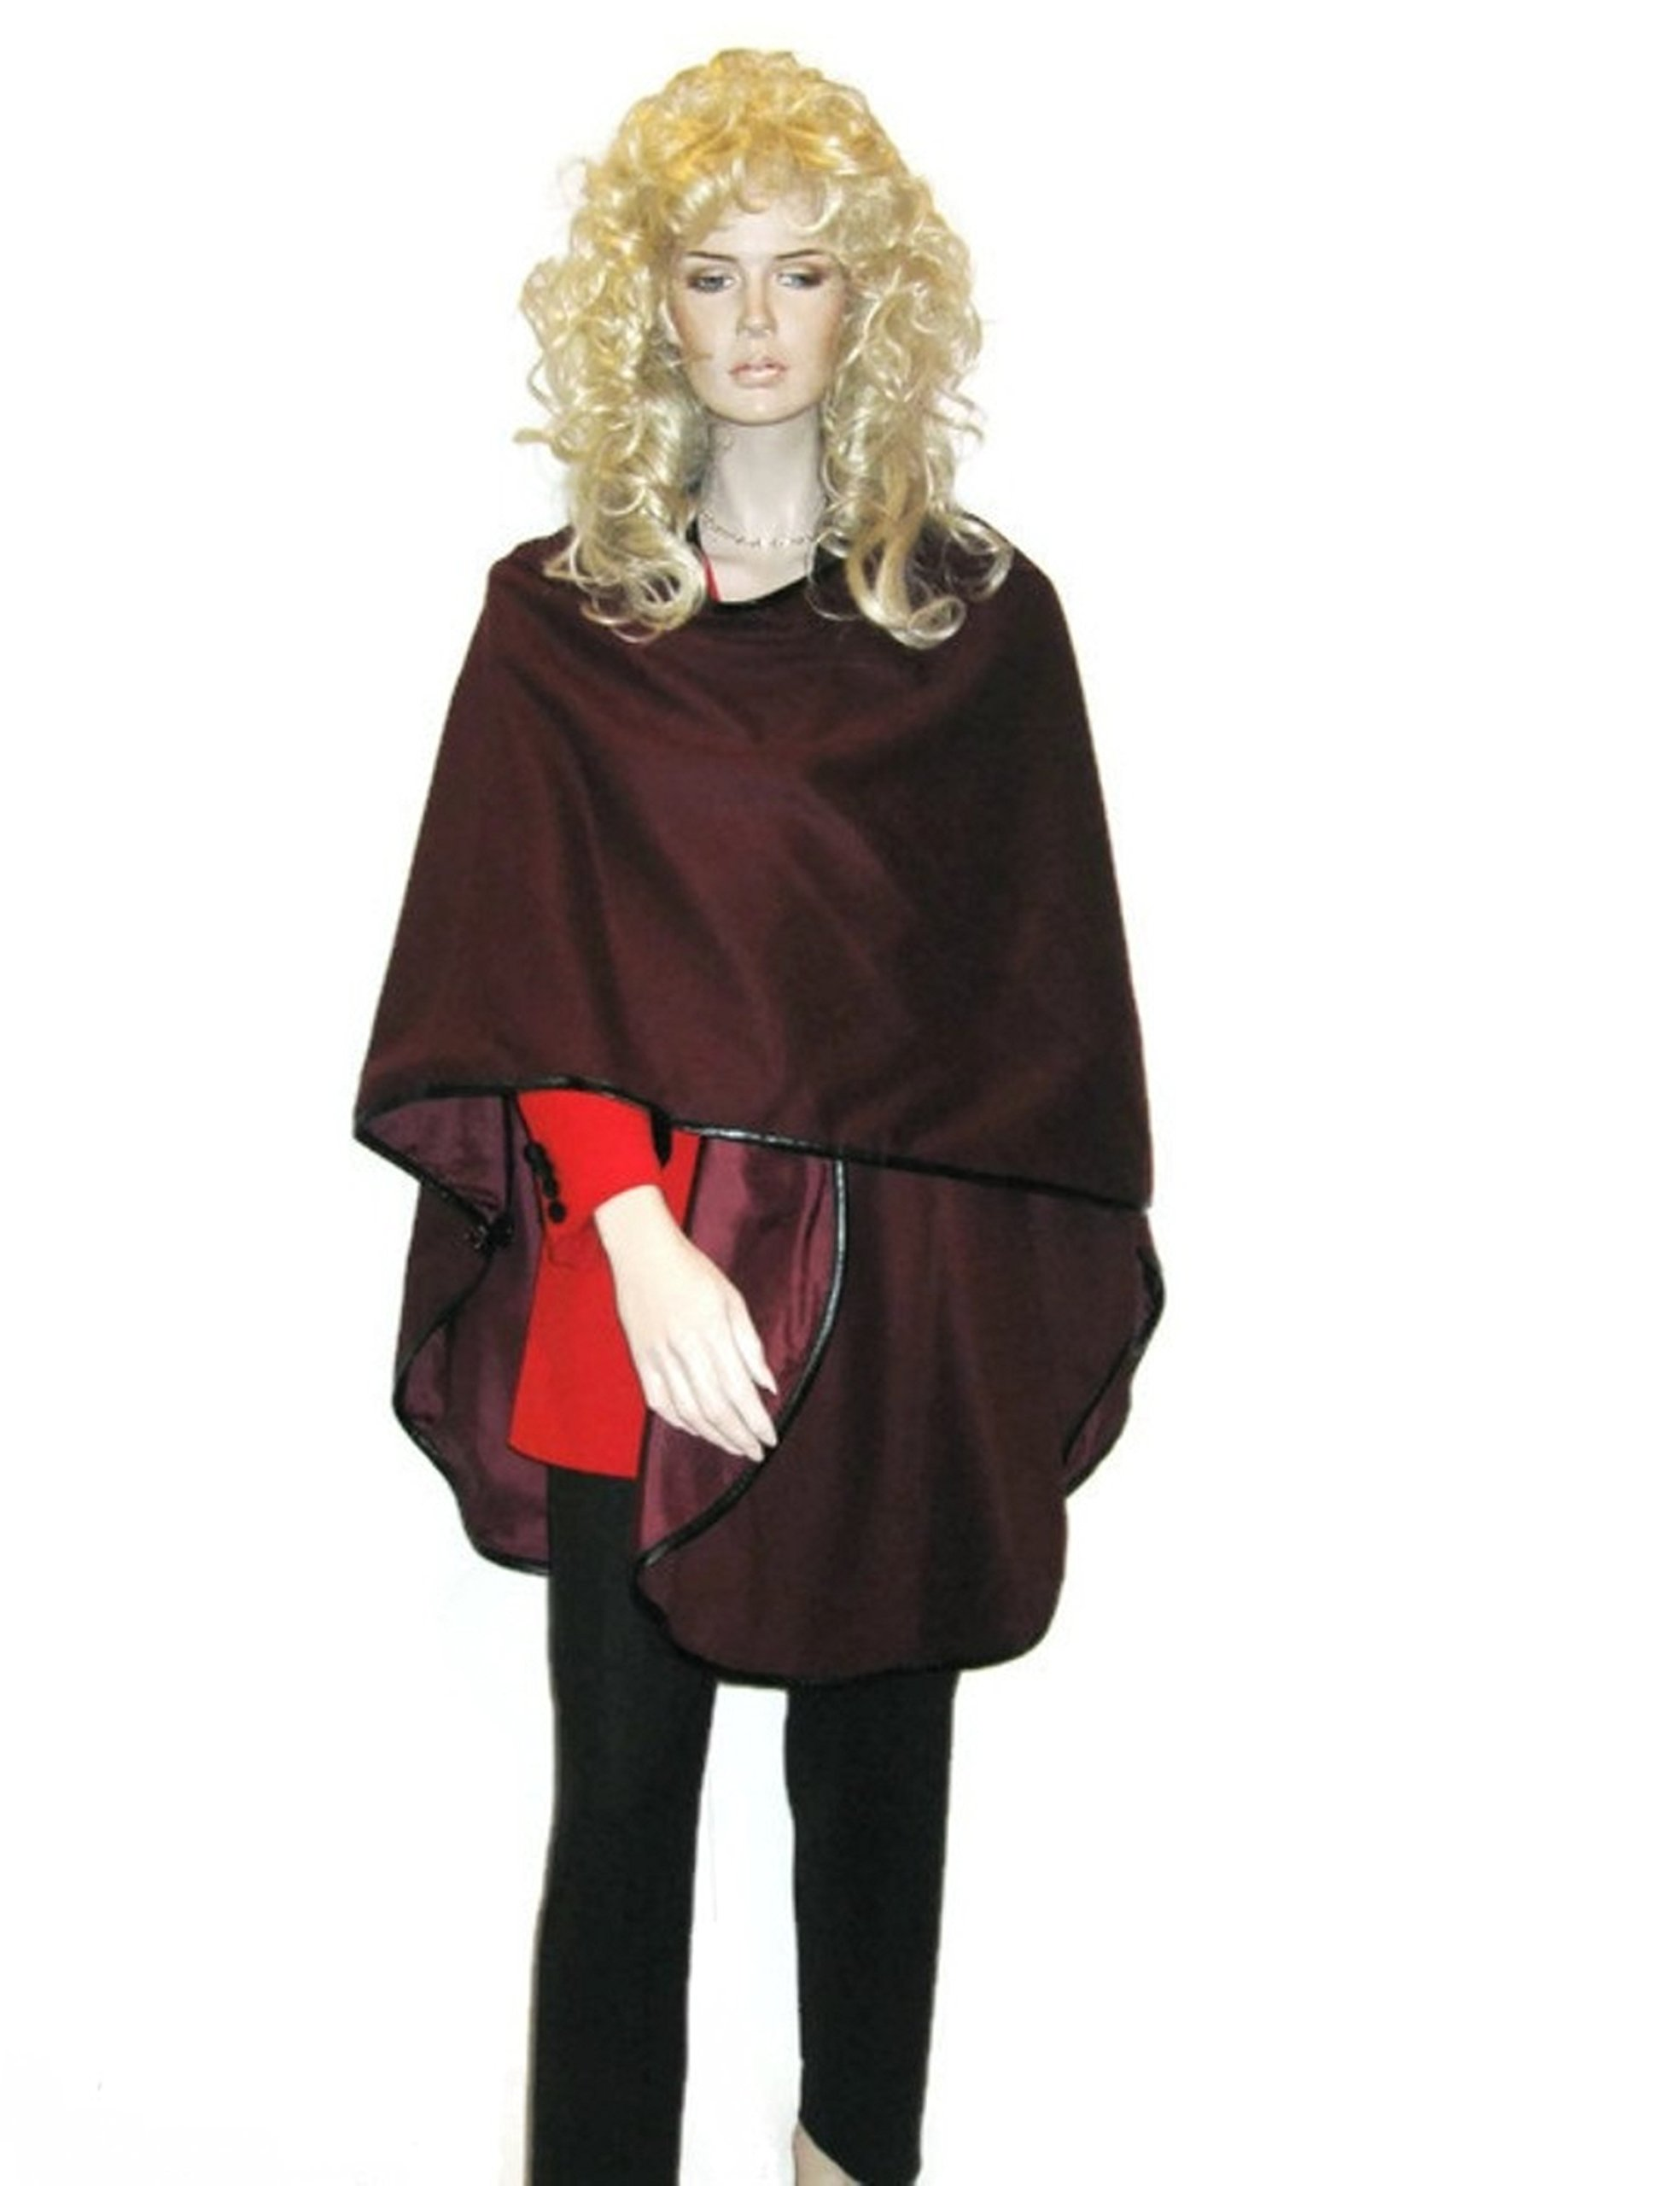 Cashmere Pashmina Group: Cashmere Cape in pure Cashmere with genuine Leather Trim & lining (Wine) by Cashmere Pashmina Group